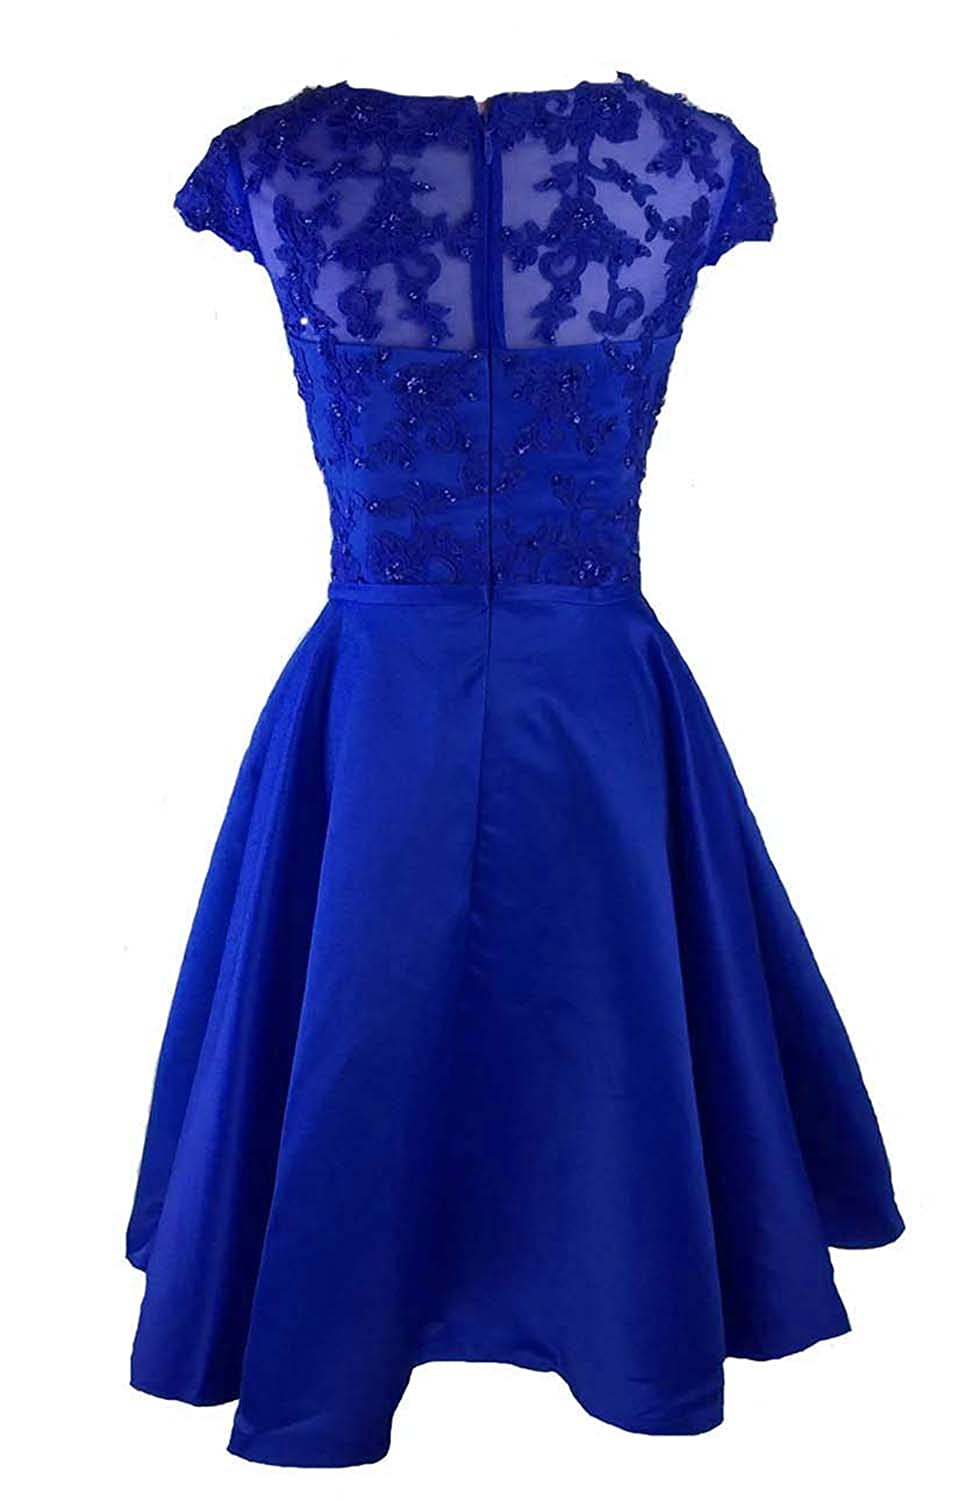 eb3d14da7b2 Amazon.com  Fanhao Women s Bateau Neck Lace Beading Pockets Short Evening  Gown Dress